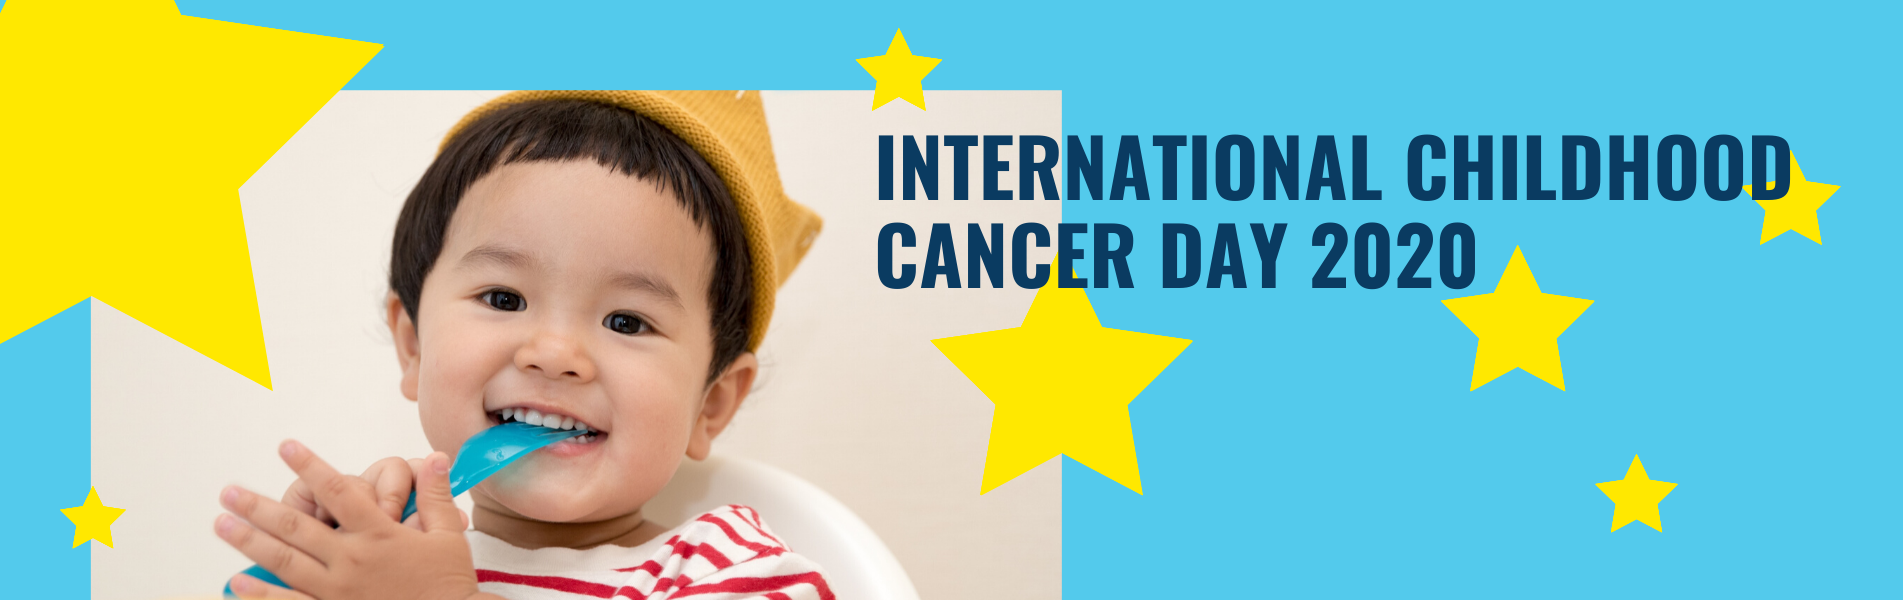 HELP KIDS WITH CANCER REACH THEIR FULL POTENTIAL